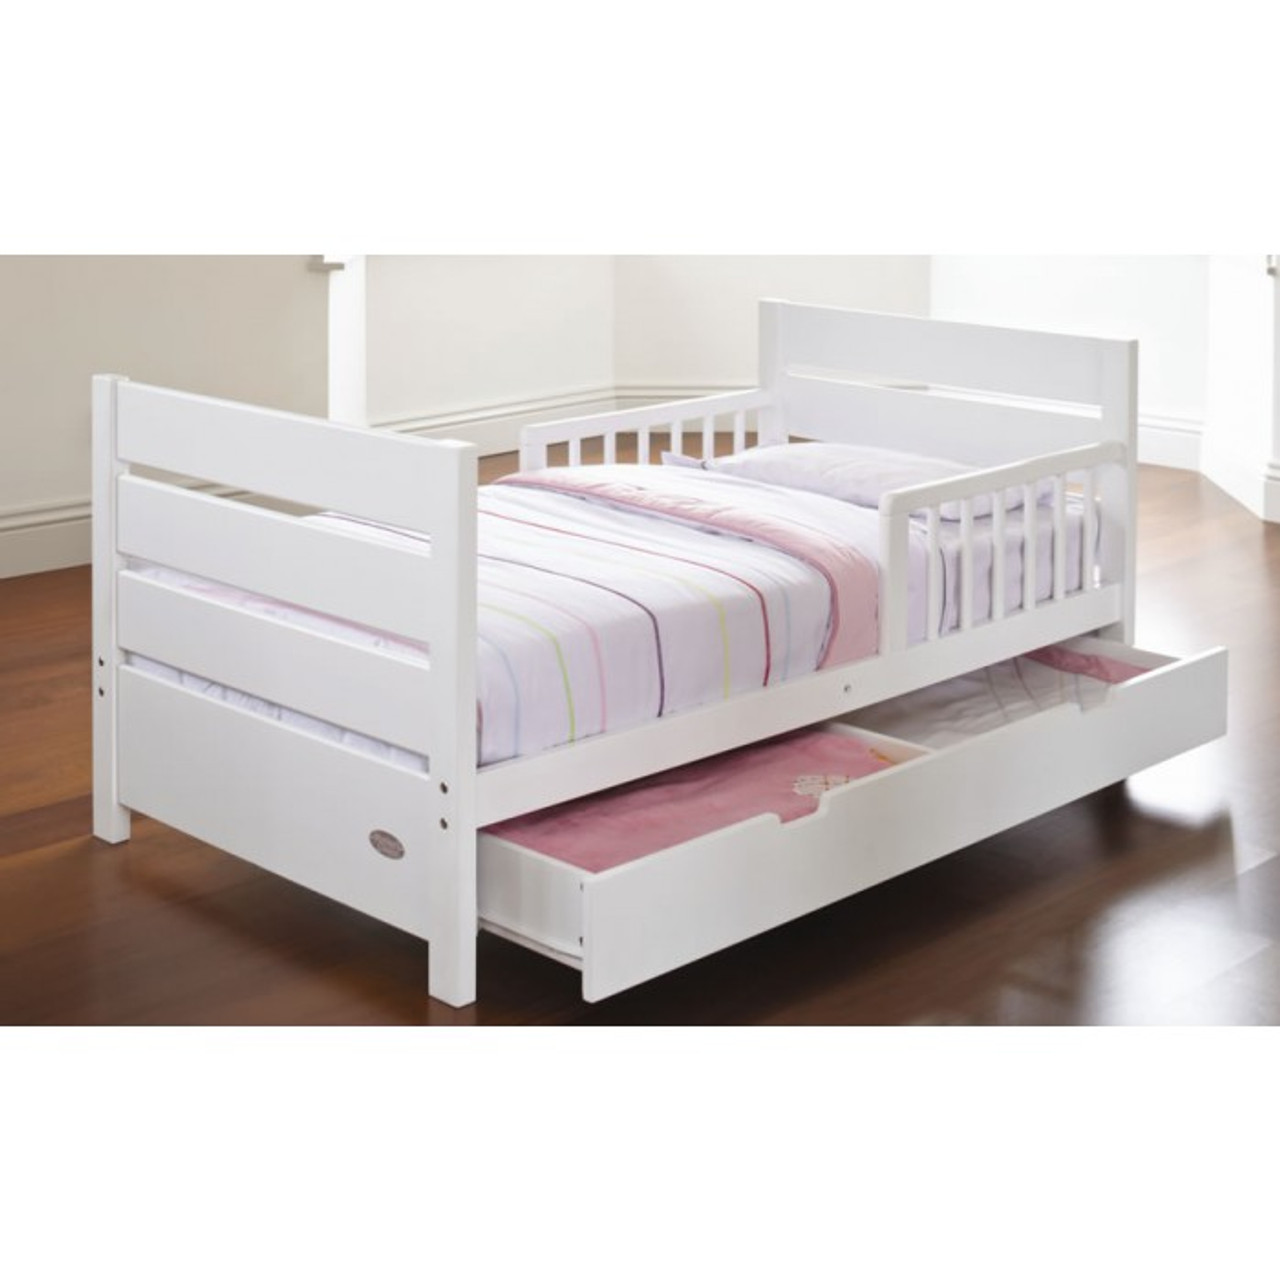 Mothers Choice Toddler Bed With Drawer Babies Nz